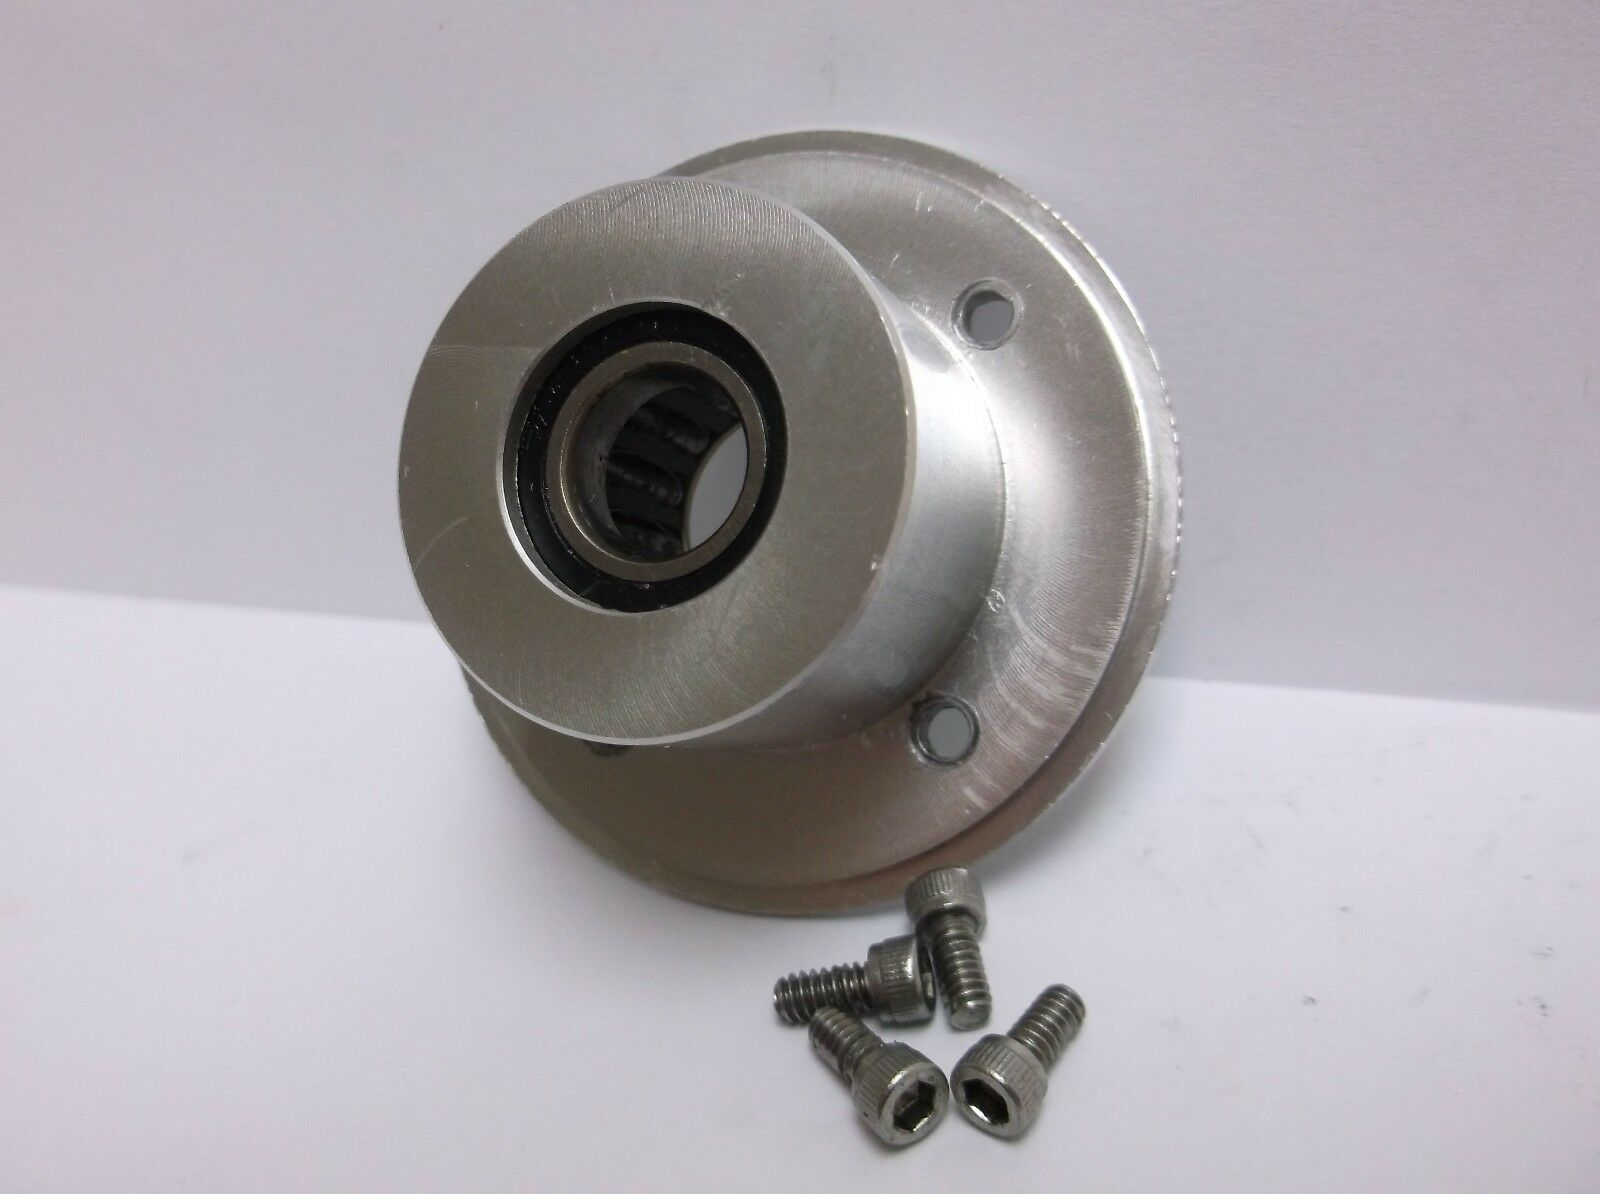 USED ACCURATE REEL PART PART PART - SR-20 Twinspin - Roller Clutch Housing Sub Assembly a67ded